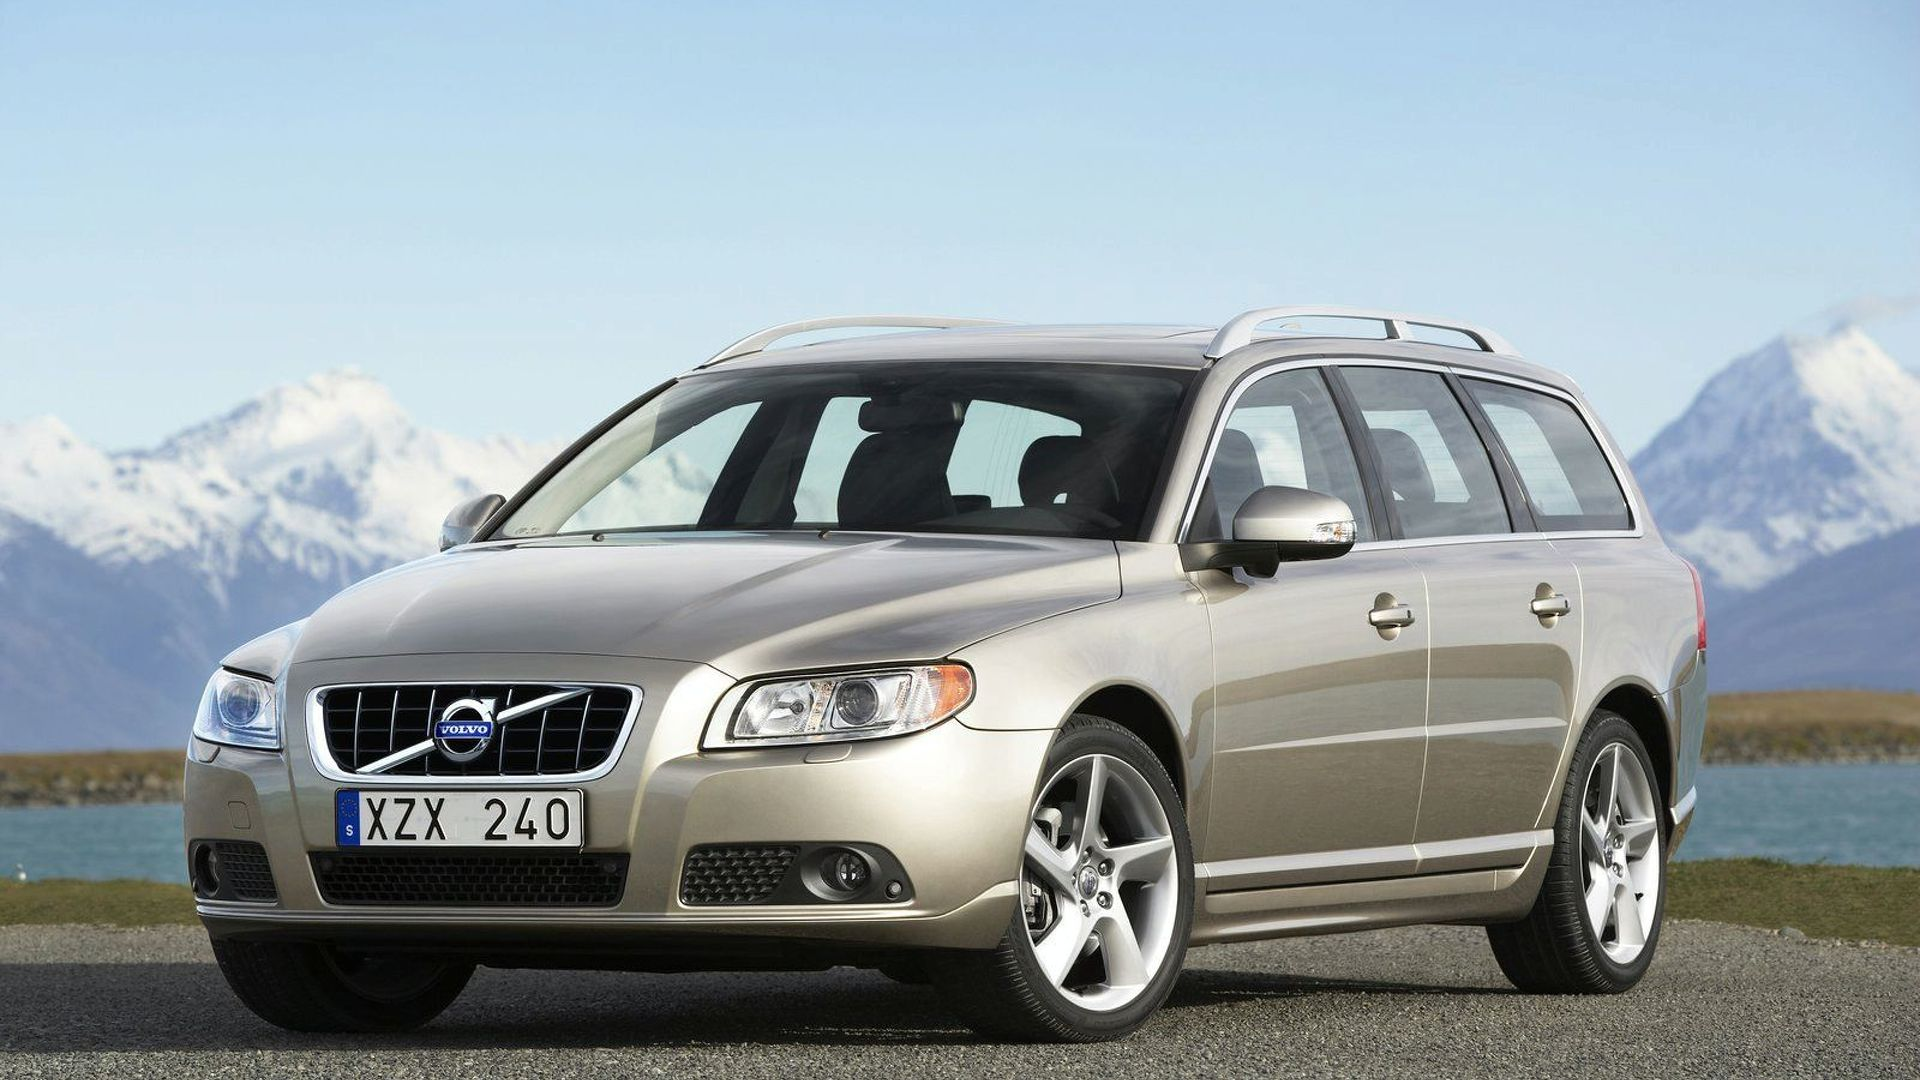 Americans hate wagons volvo v70 to get axe in u s product 2010 03 26 11 47 49